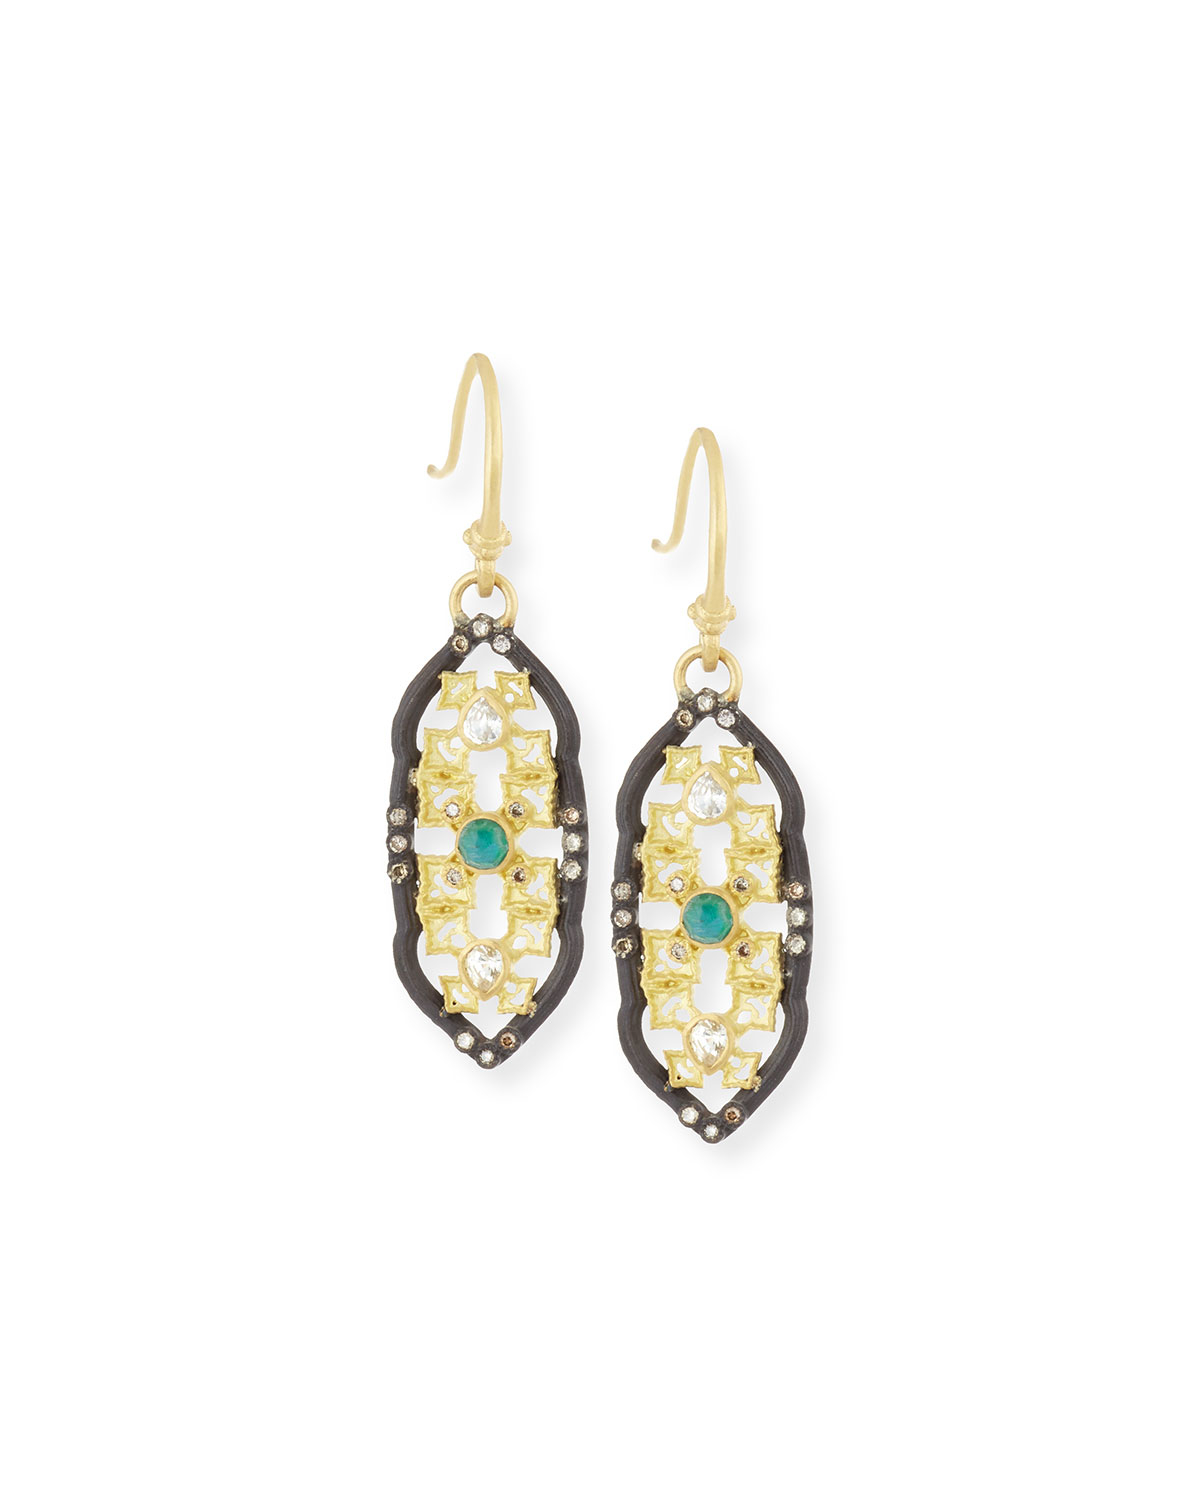 Armenta Old World Scalloped Aquaprase Cabochon Earrings with Diamonds fs5wfiqN3T